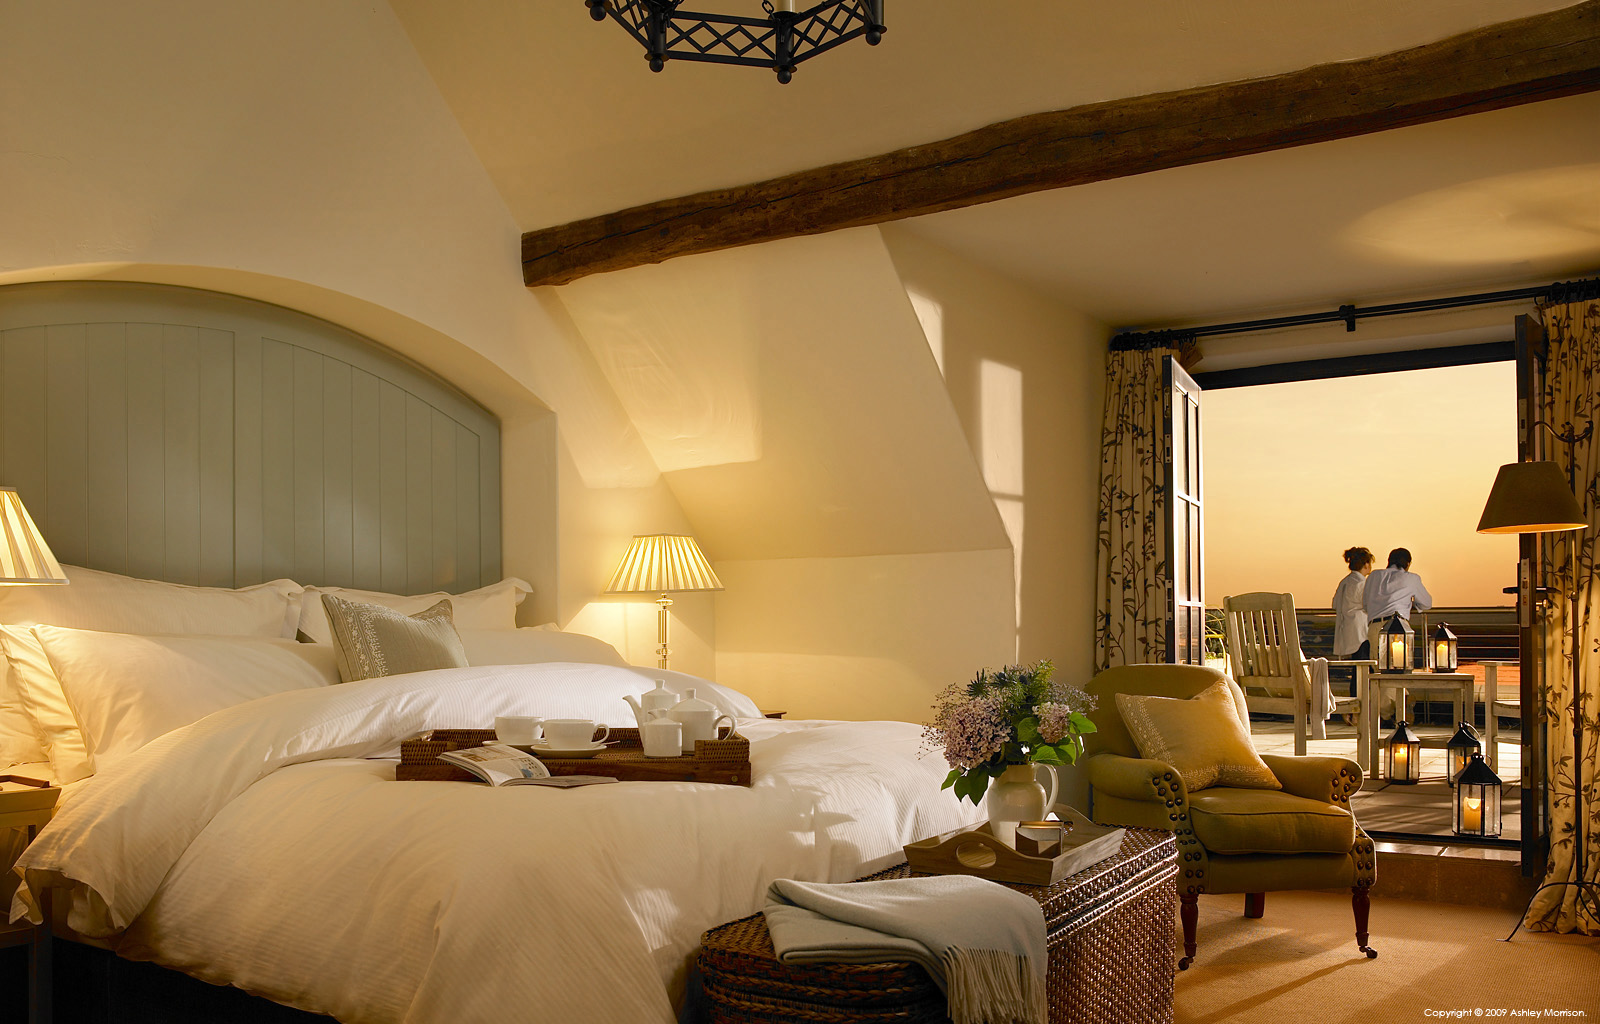 Bedroom suite in one of the Courtyard cottages at the Trump International Golf Links & Hotel in County Clare.